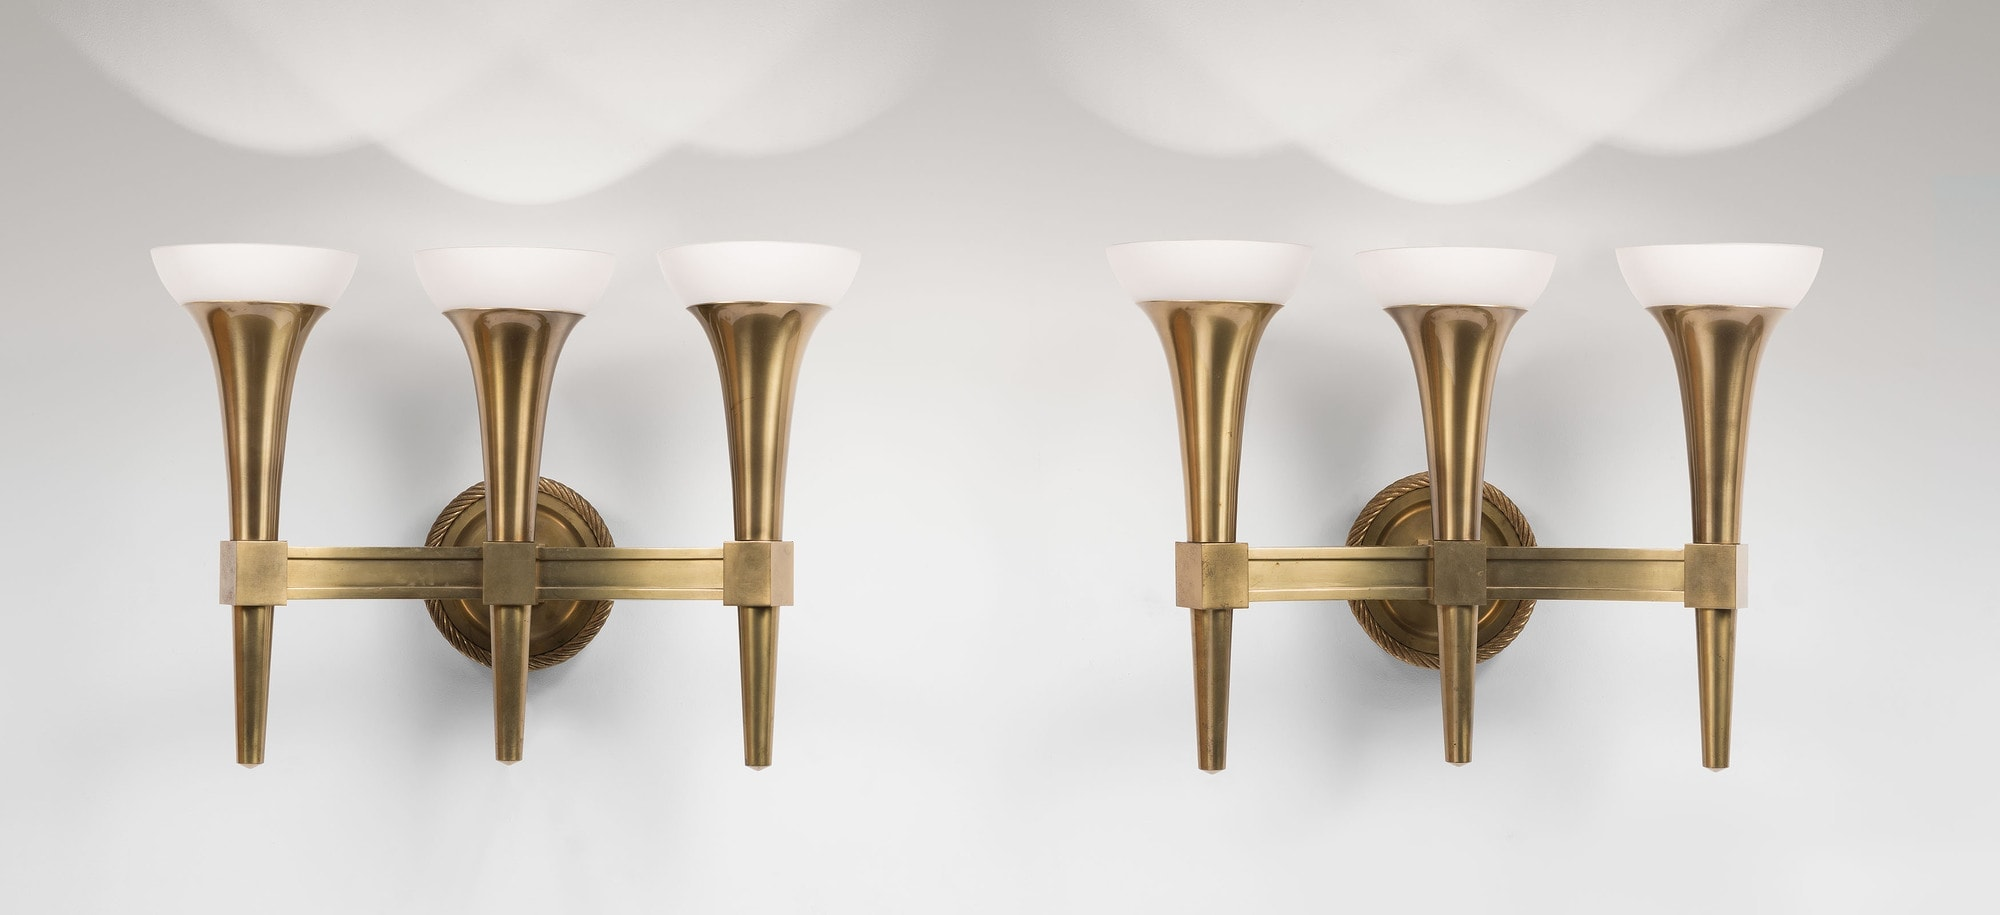 André Arbus, Pair of monumental wall-lamps with three arms, vue 02